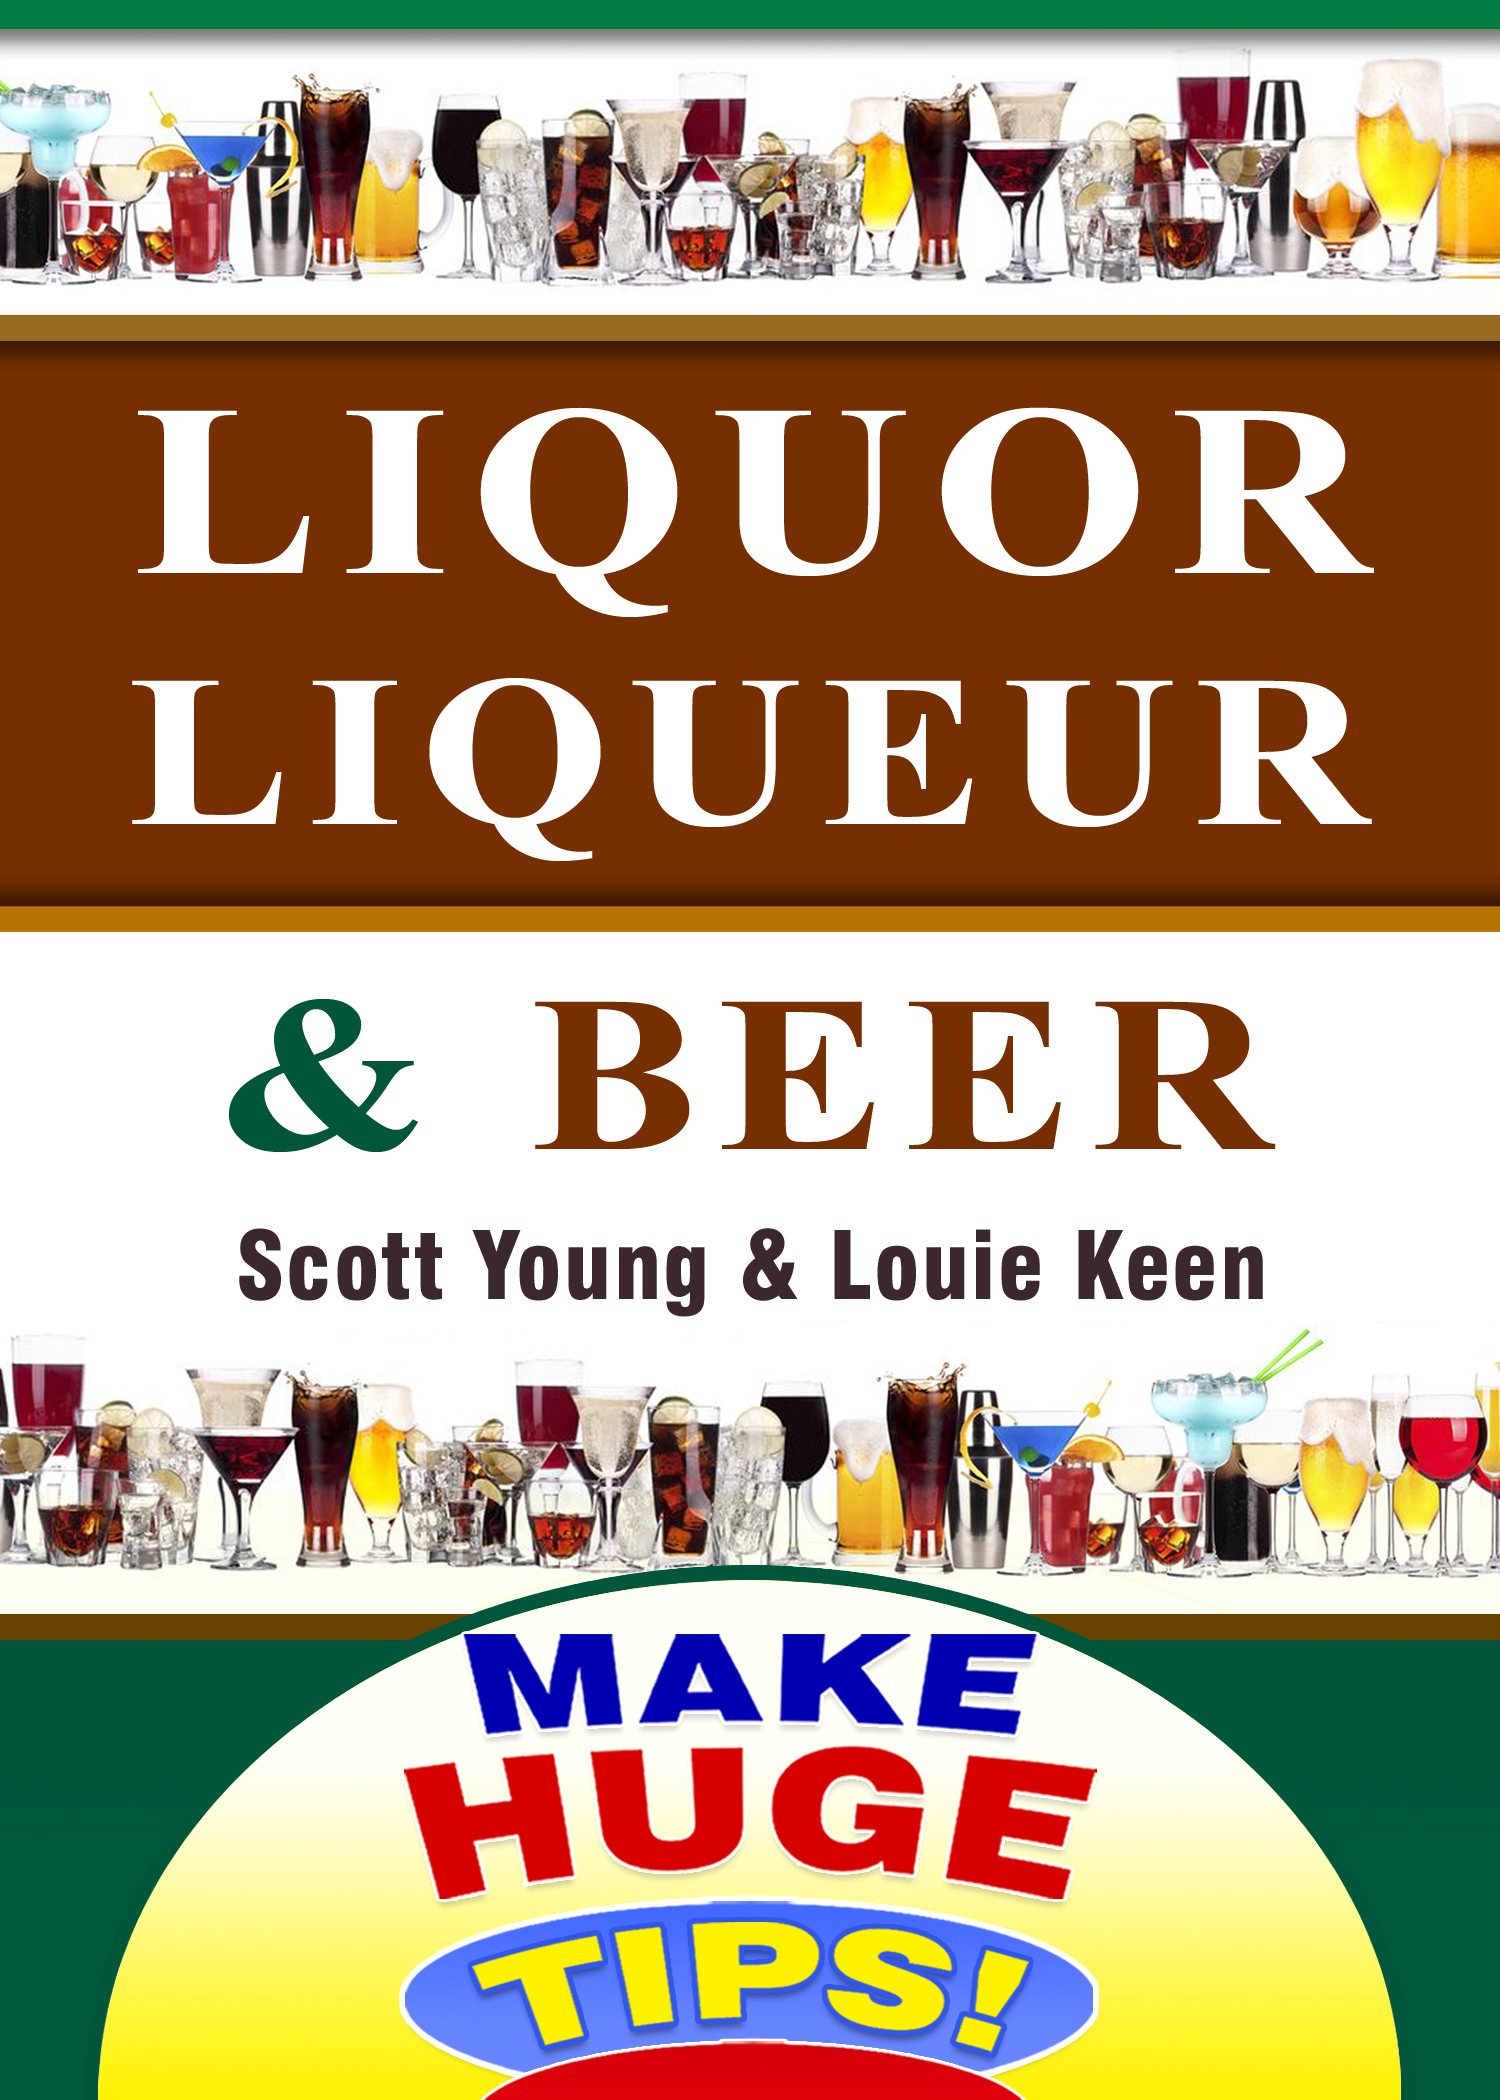 nbart_REVISED Liquor, Liqueur and Beer_ Cover-1.jpg